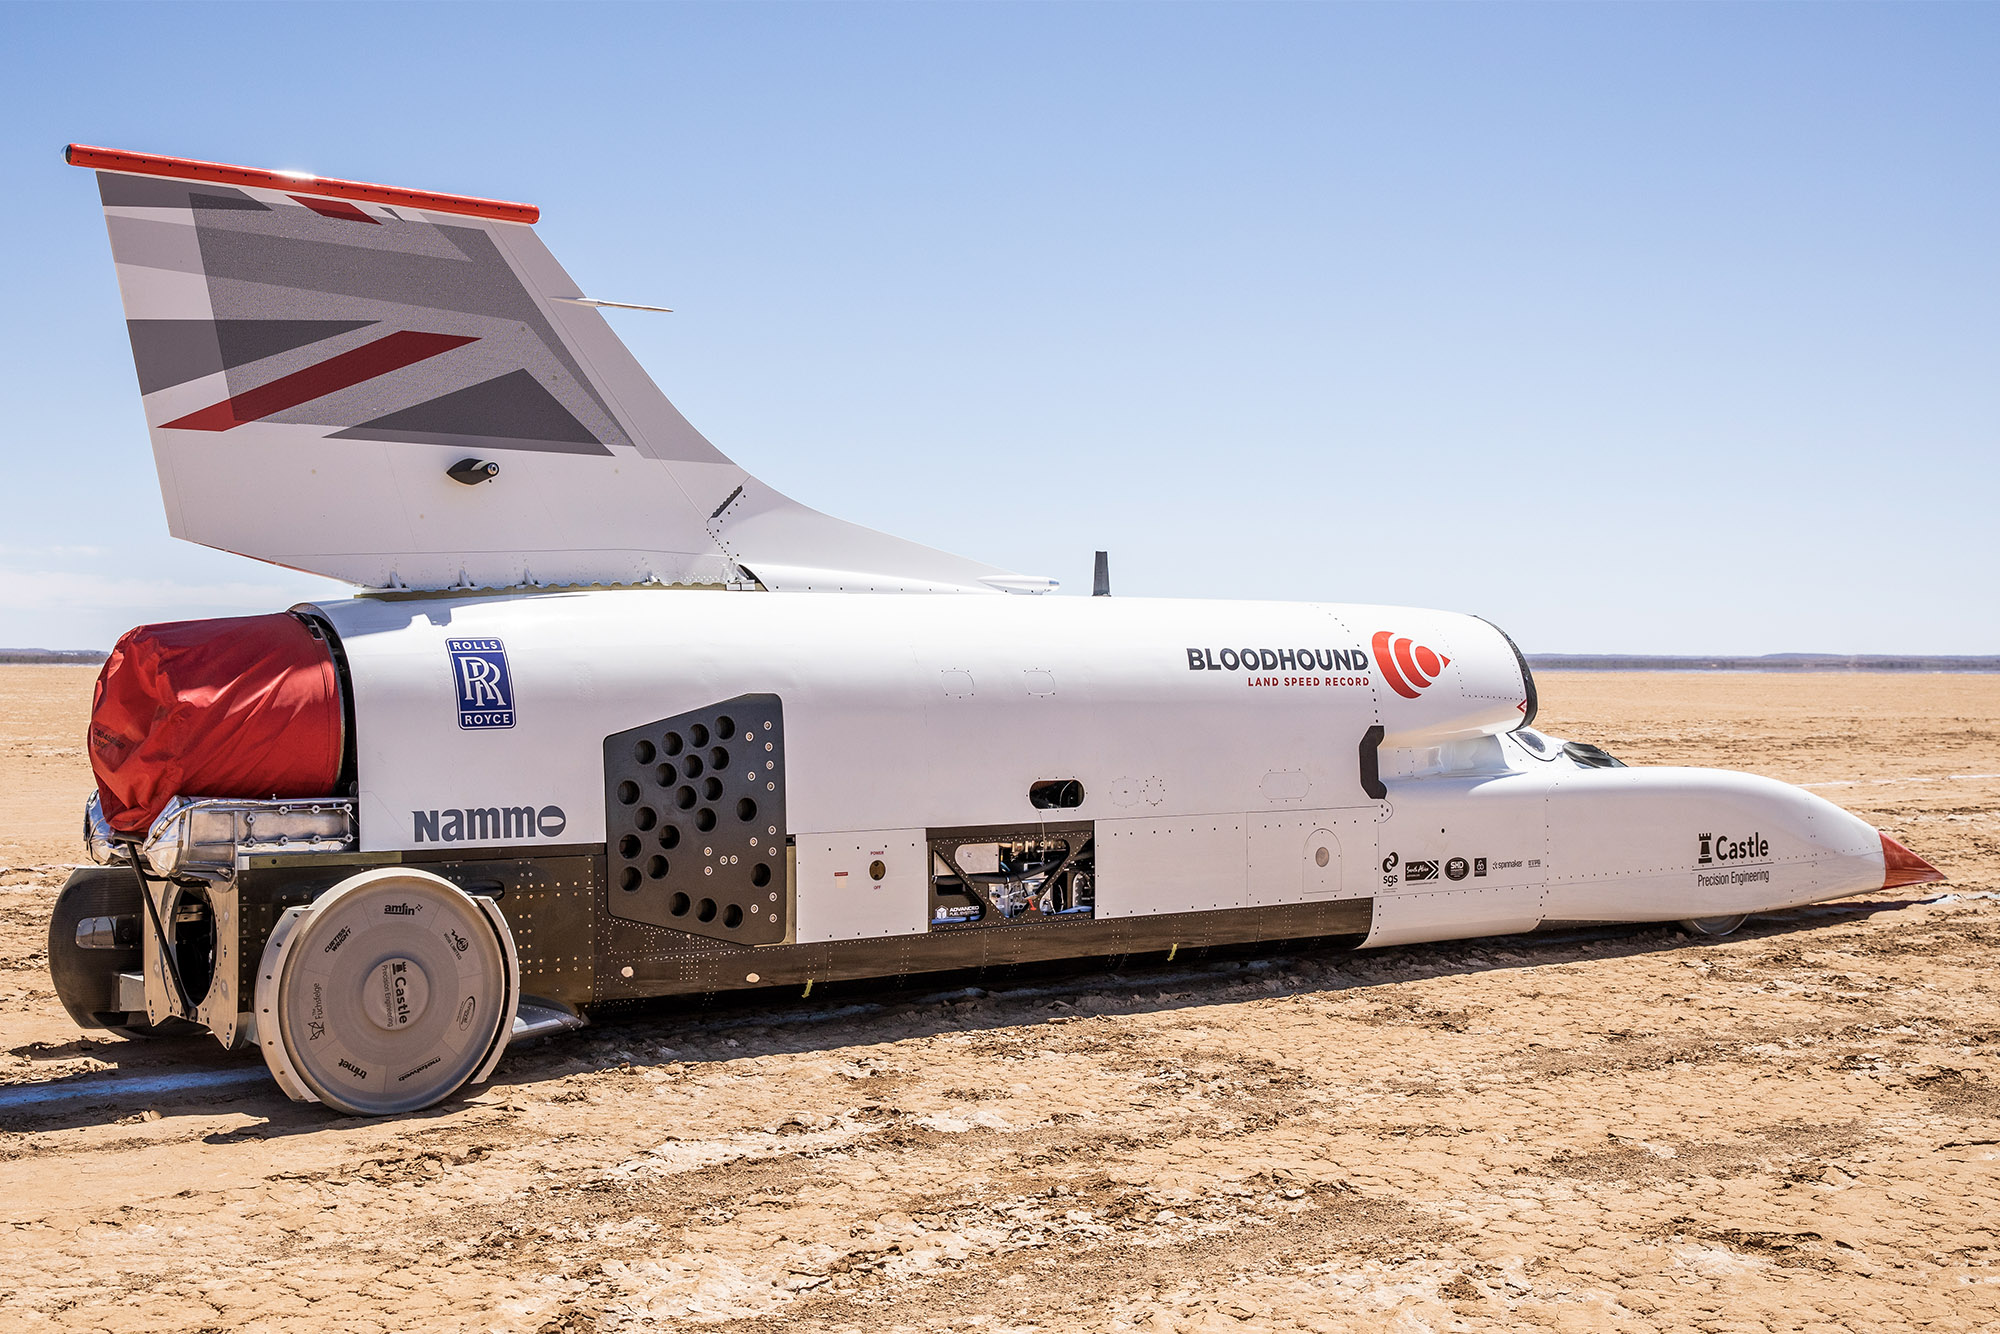 Land speed record in sight for Bloodhound after successful 2019 in South Africa